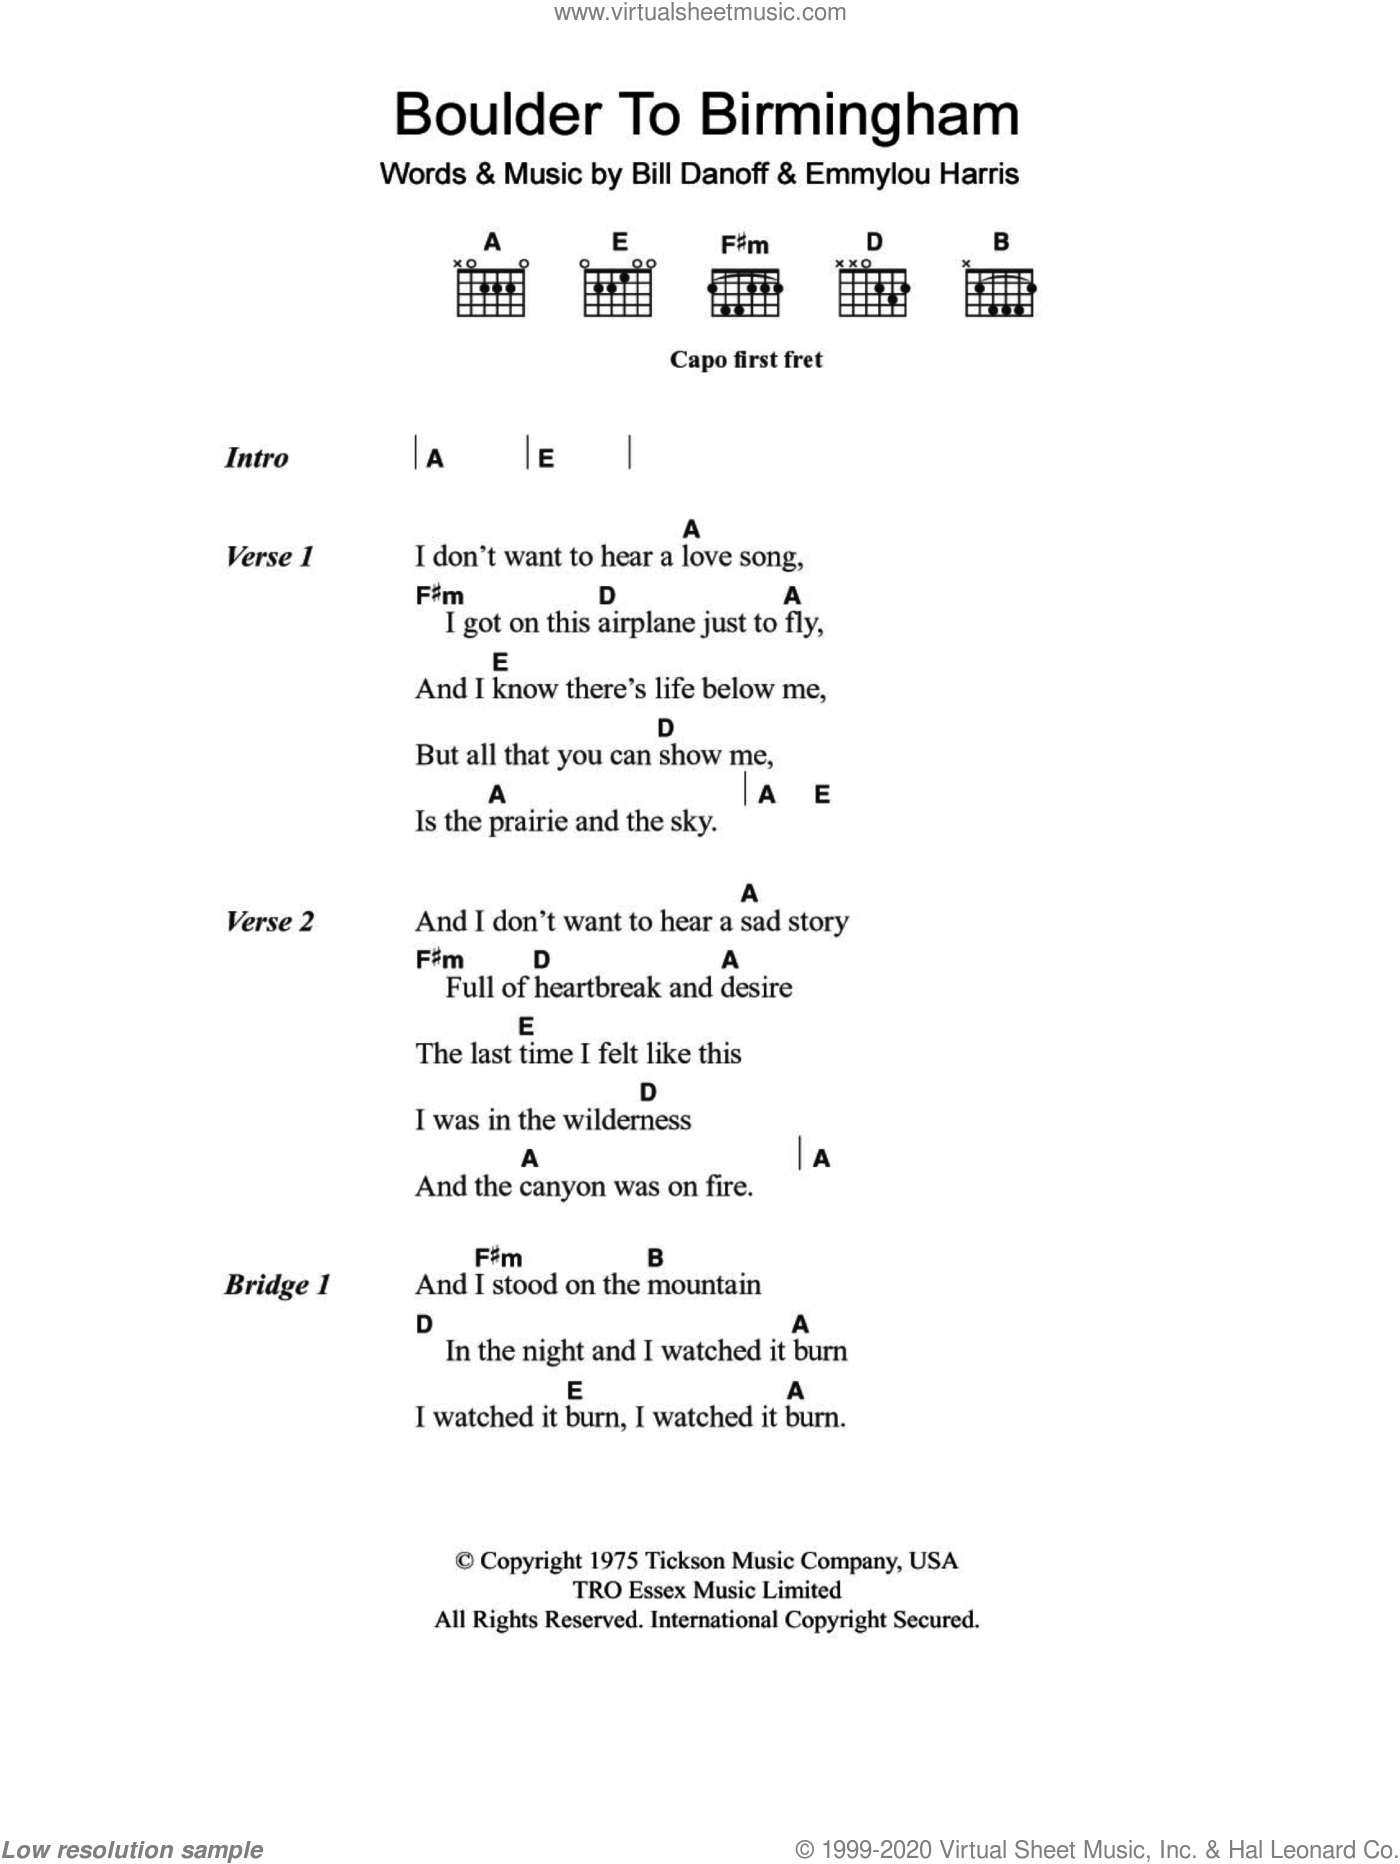 Boulder To Birmingham sheet music for guitar (chords, lyrics, melody) by Bill Danoff